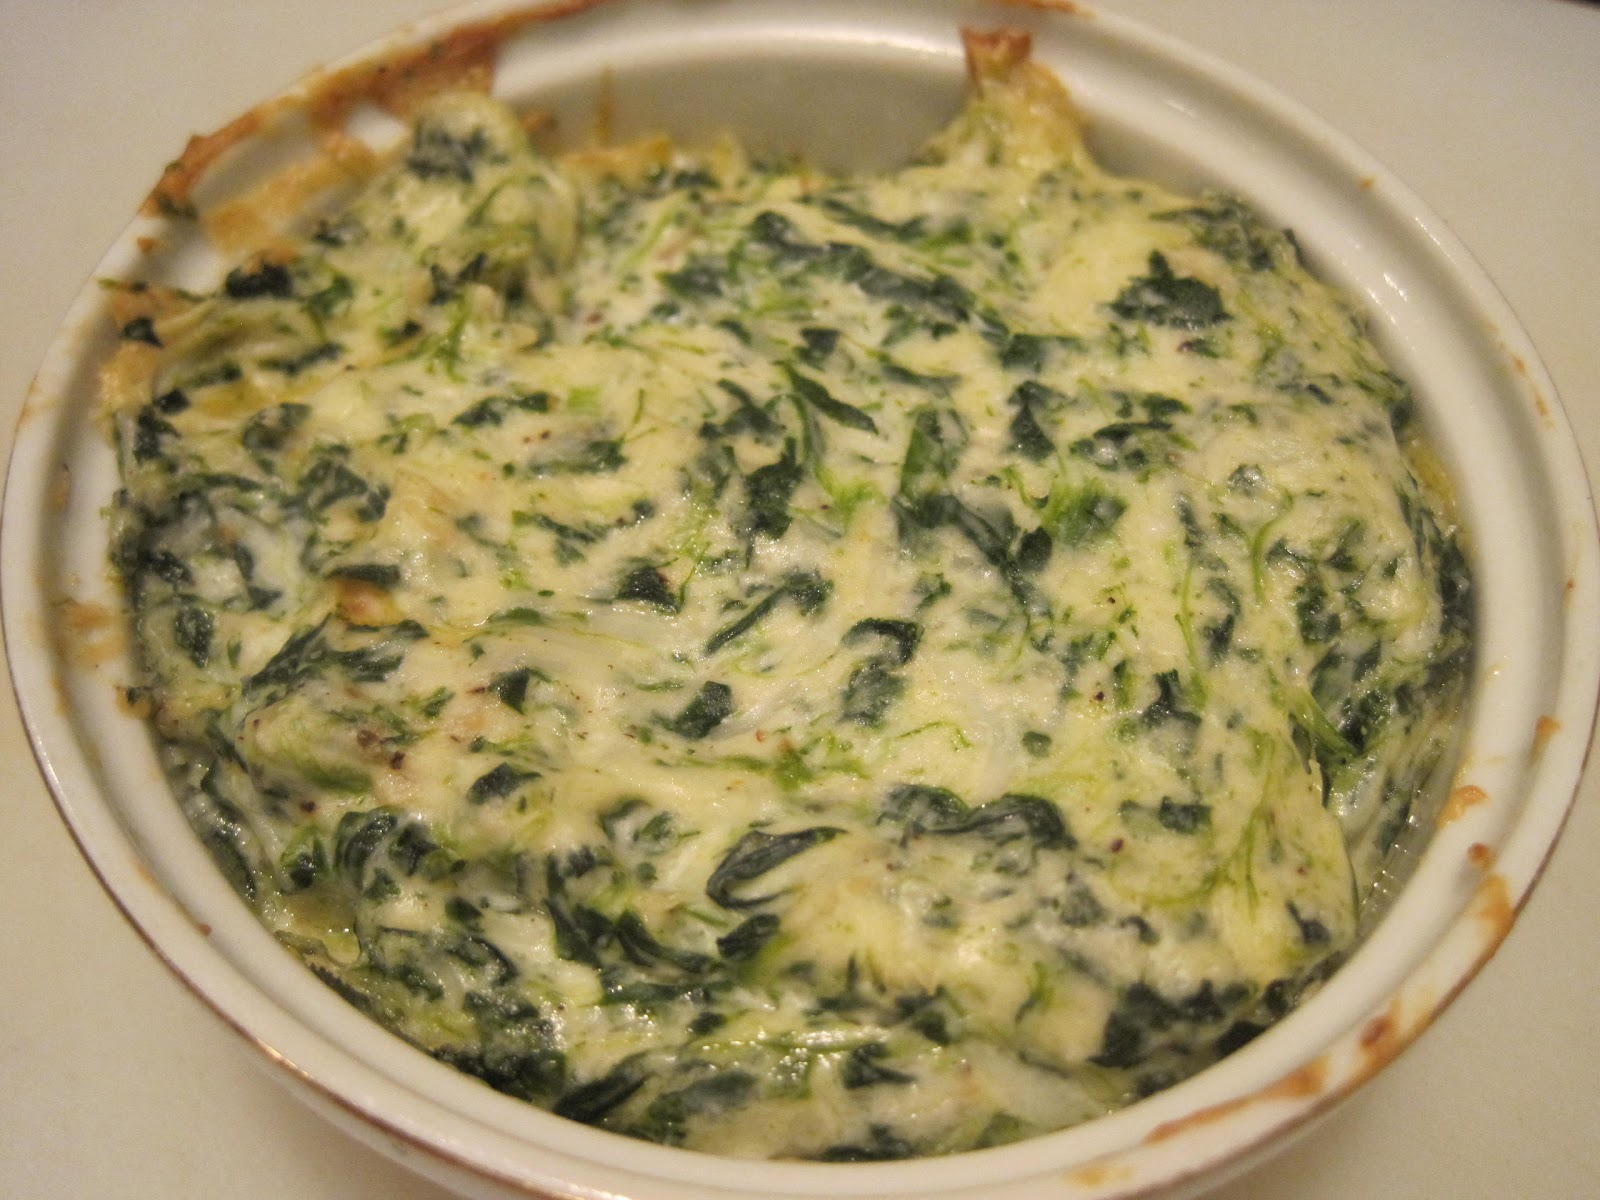 Recipes Re-Mixed: Spinach and Artichoke Dip with a Twist